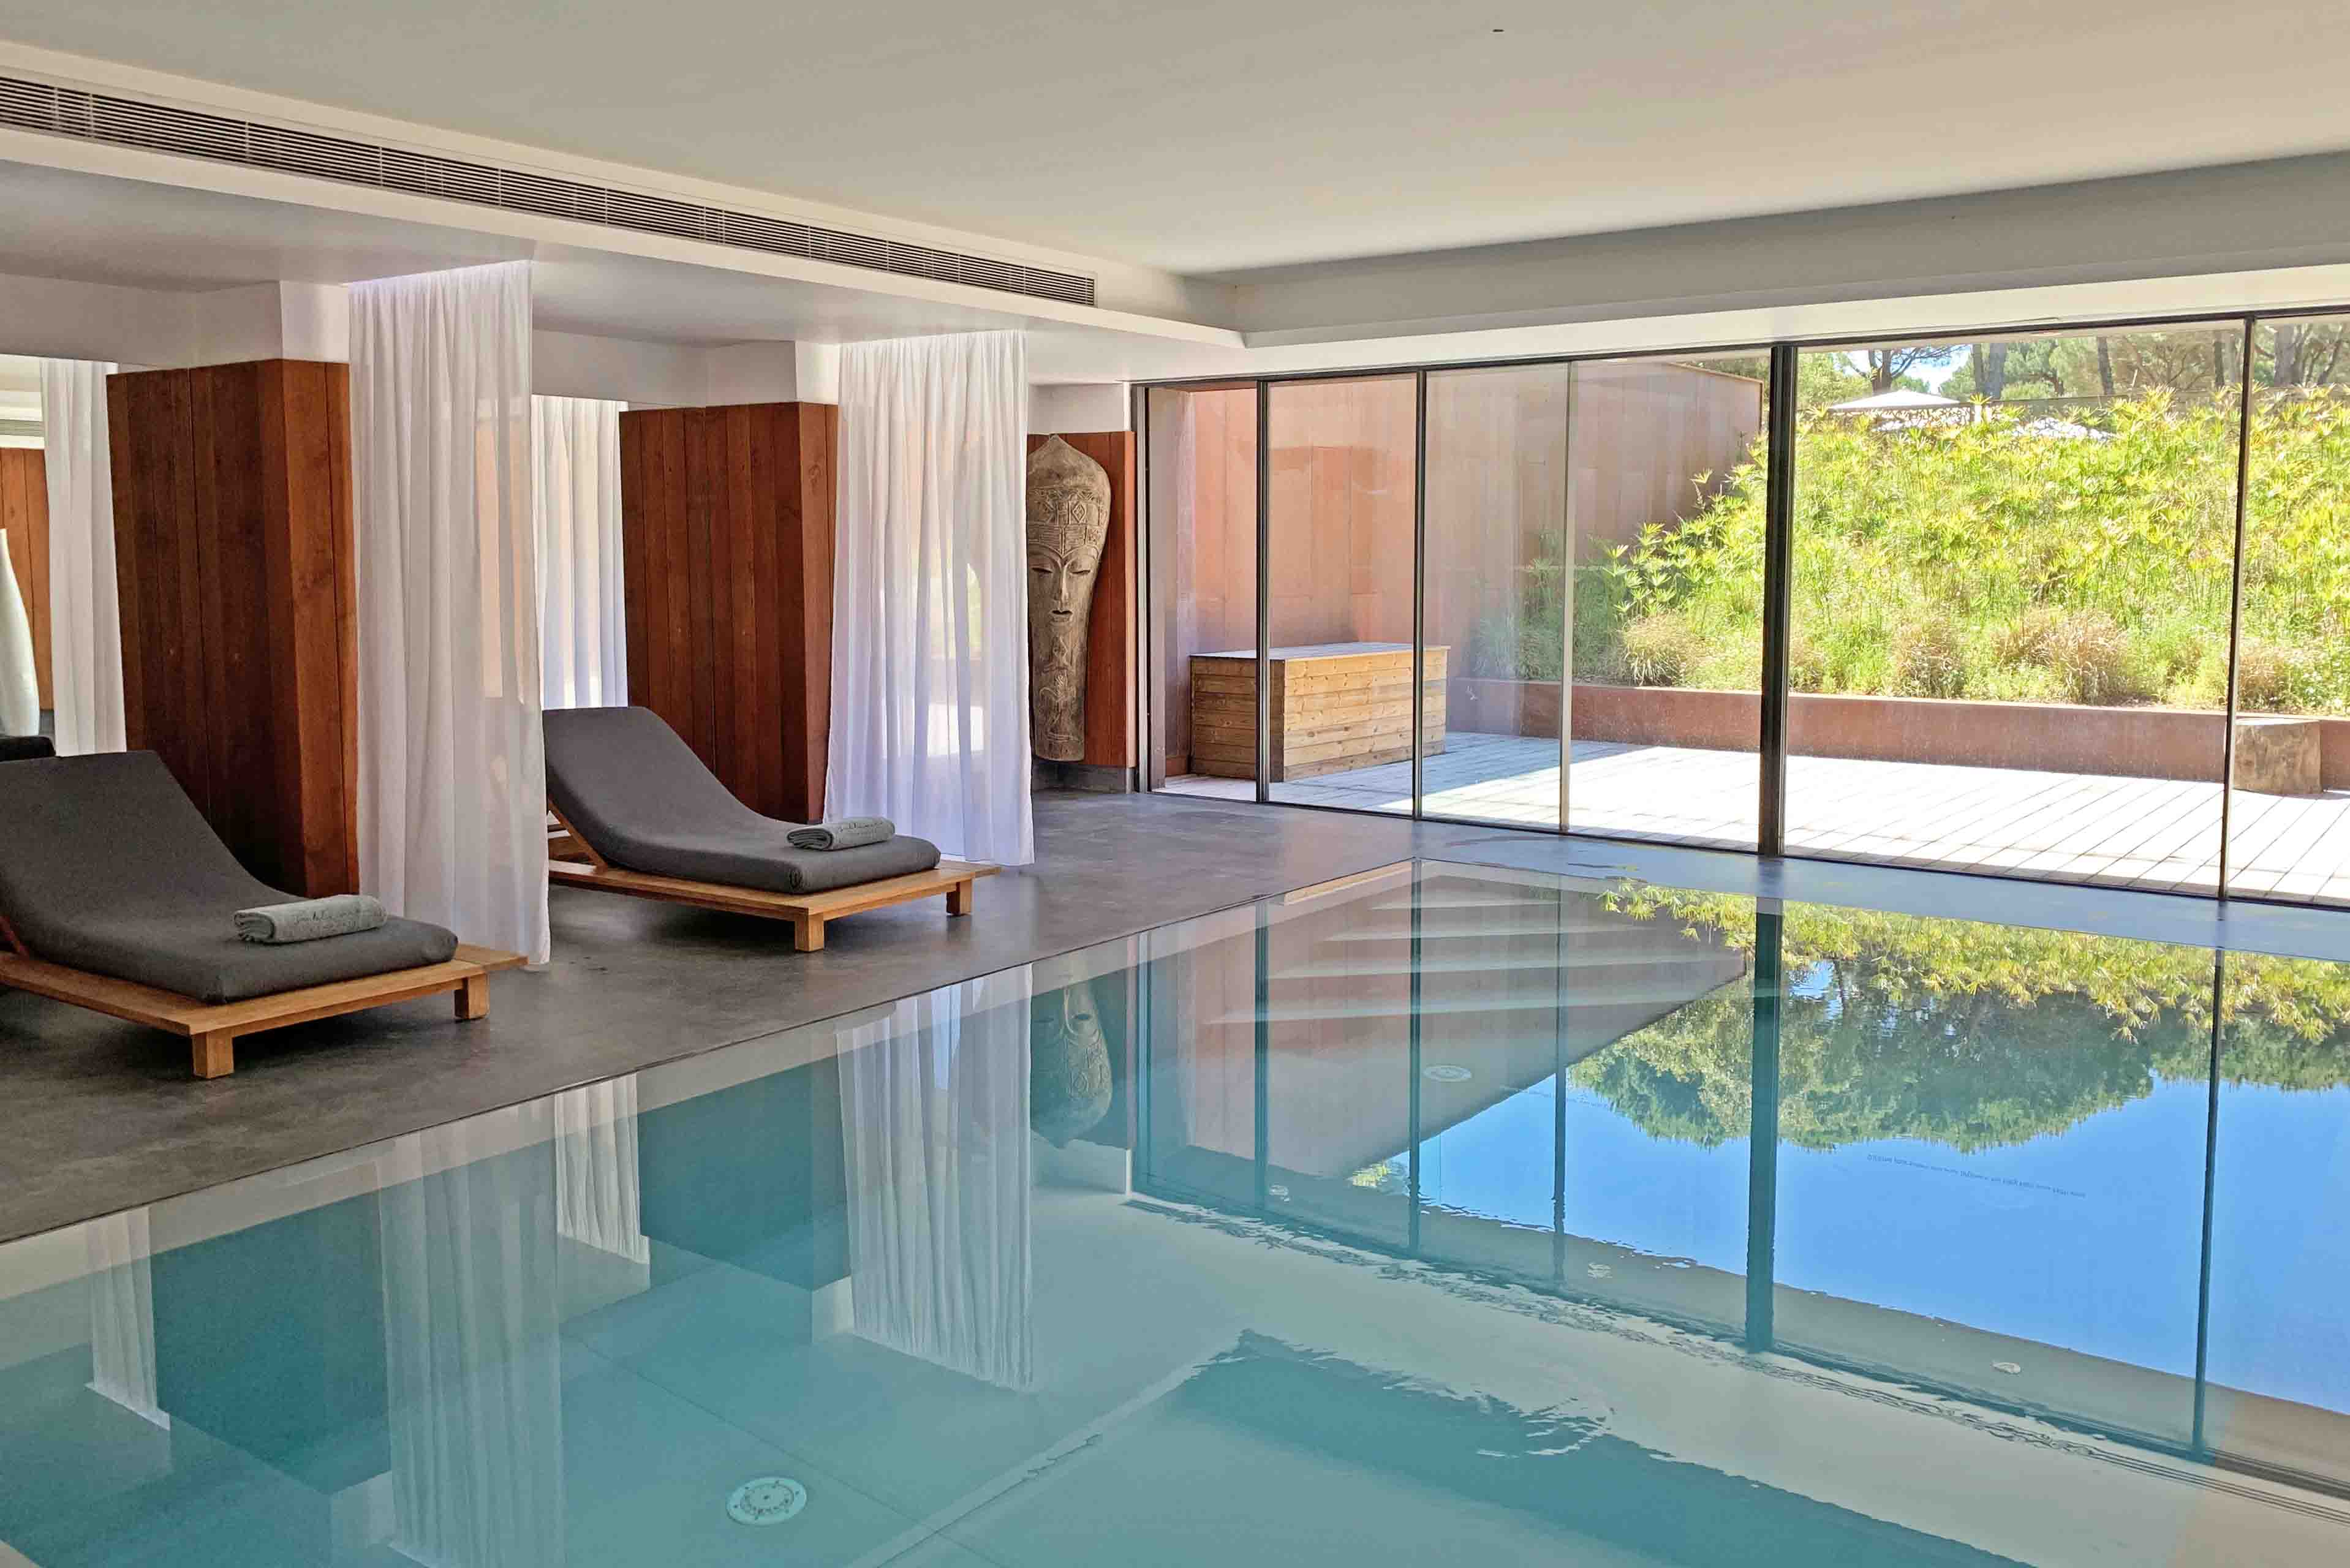 Sublime SPA - Sublime Comporta hotel - Portugal